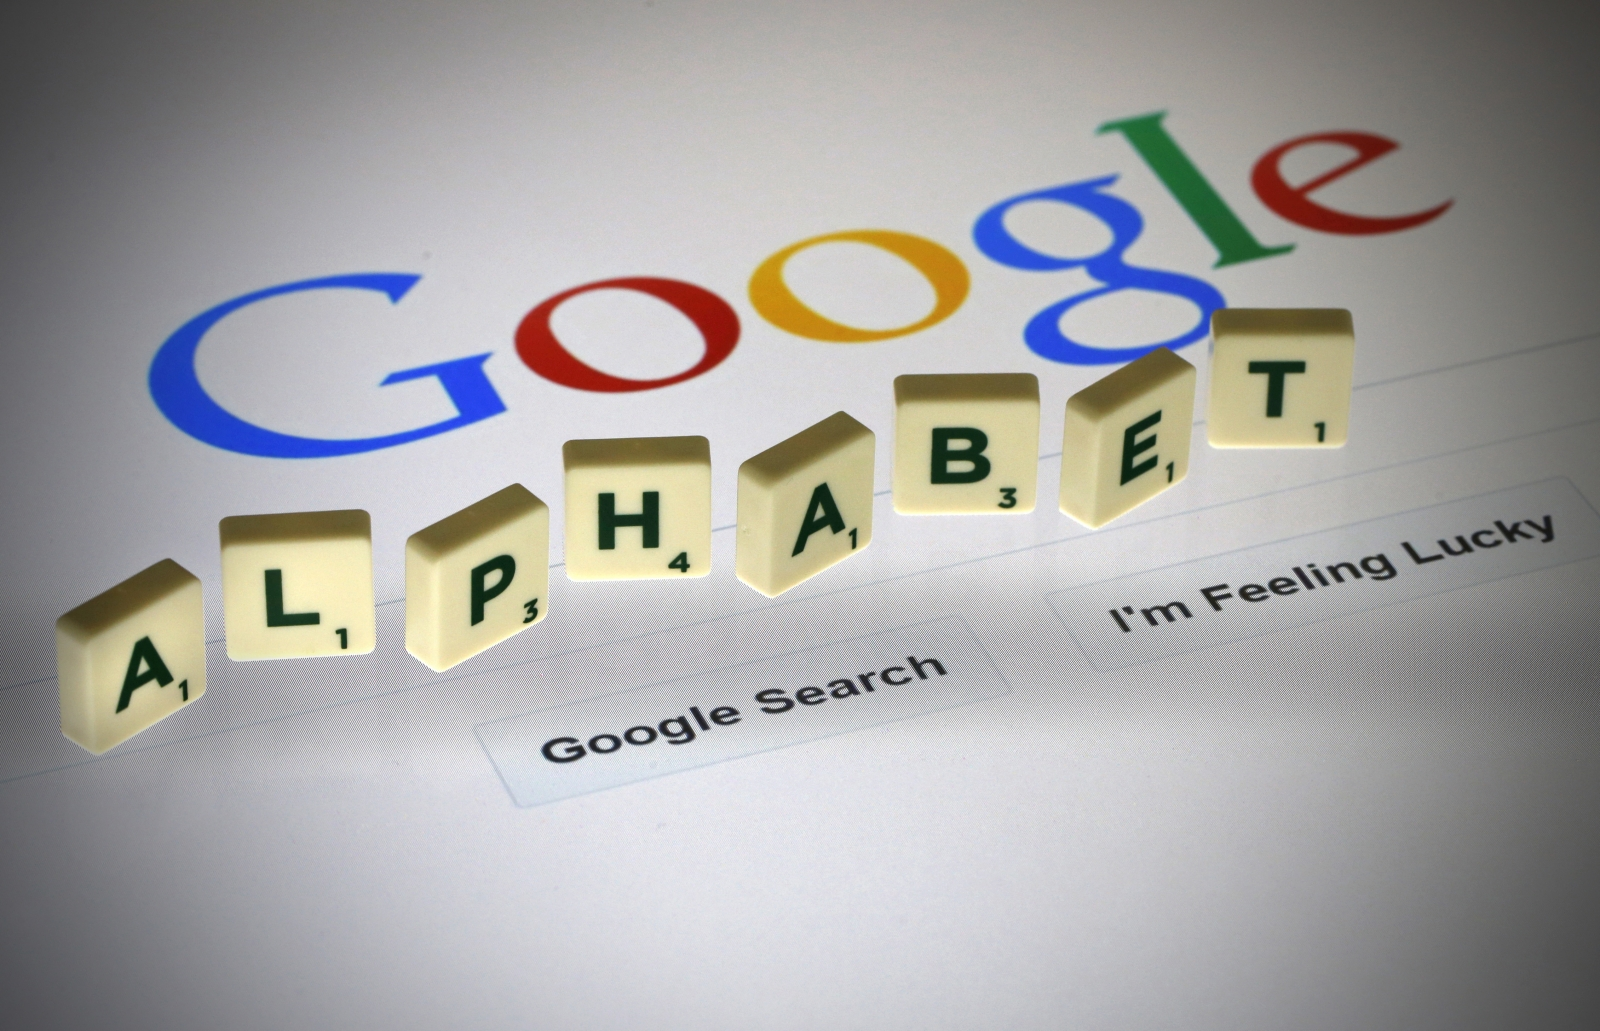 Alphabet registers a 21% jump in Q2 revenues, helped by mobile advertising